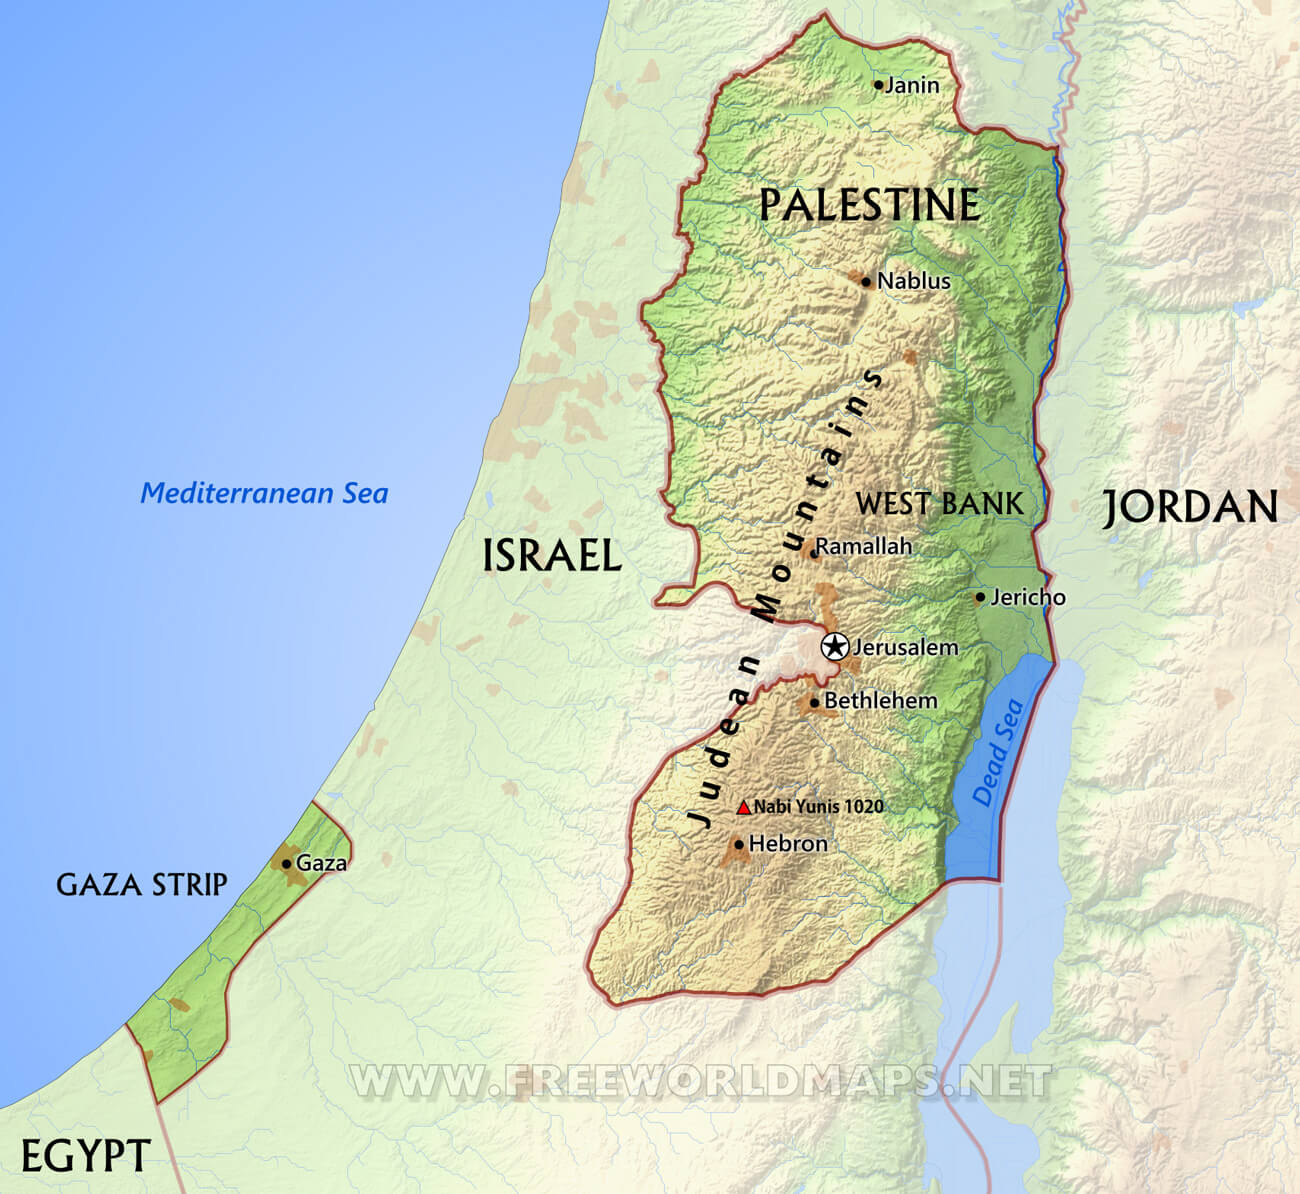 Palestine Maps By FreeWorldMapsnet - Map of egypt hd